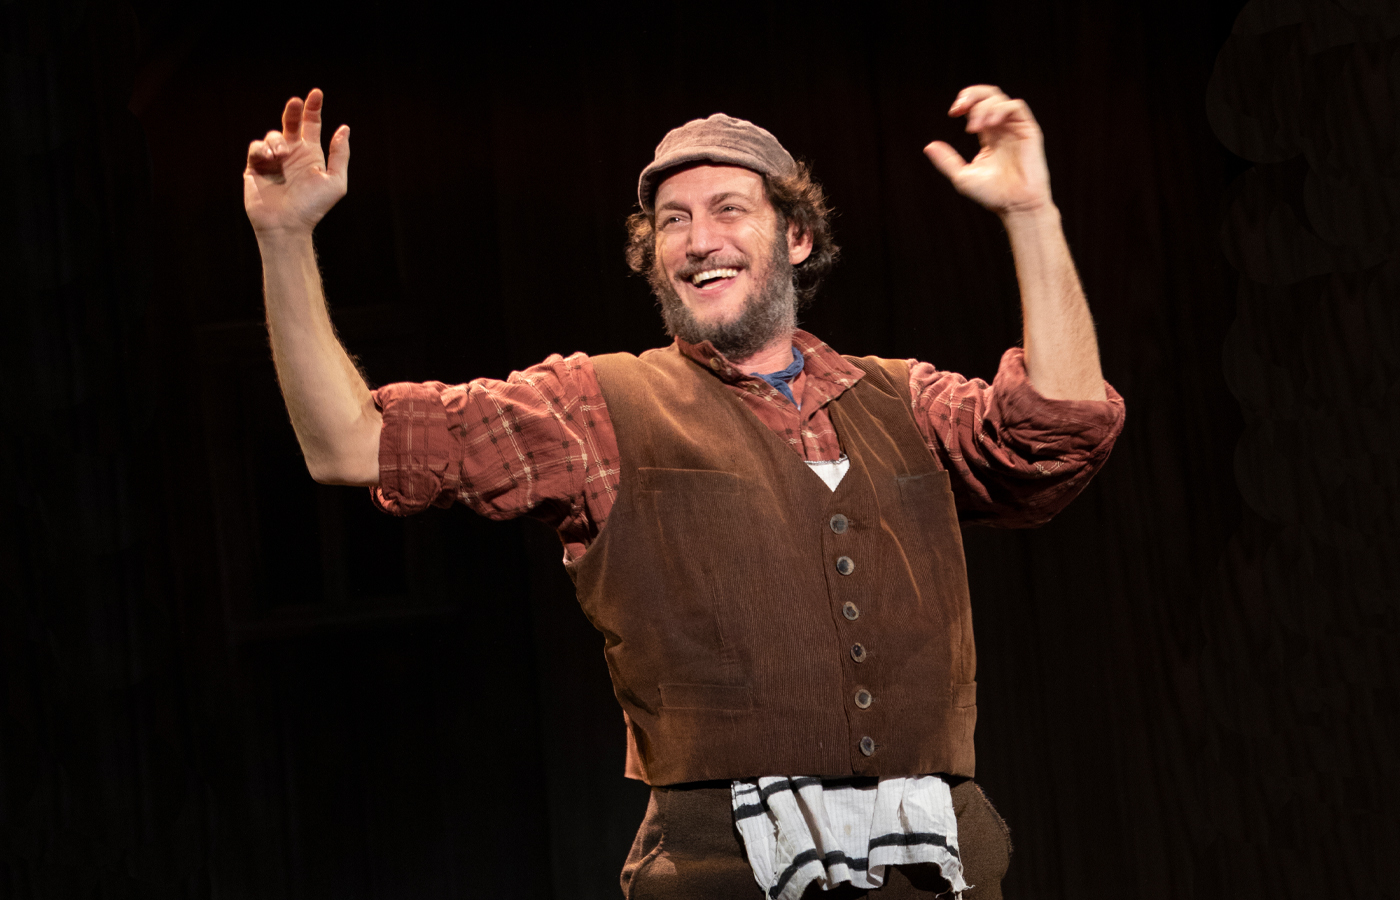 """Fiddler on the Roof"" Star Encourages Kids to Break Rules"